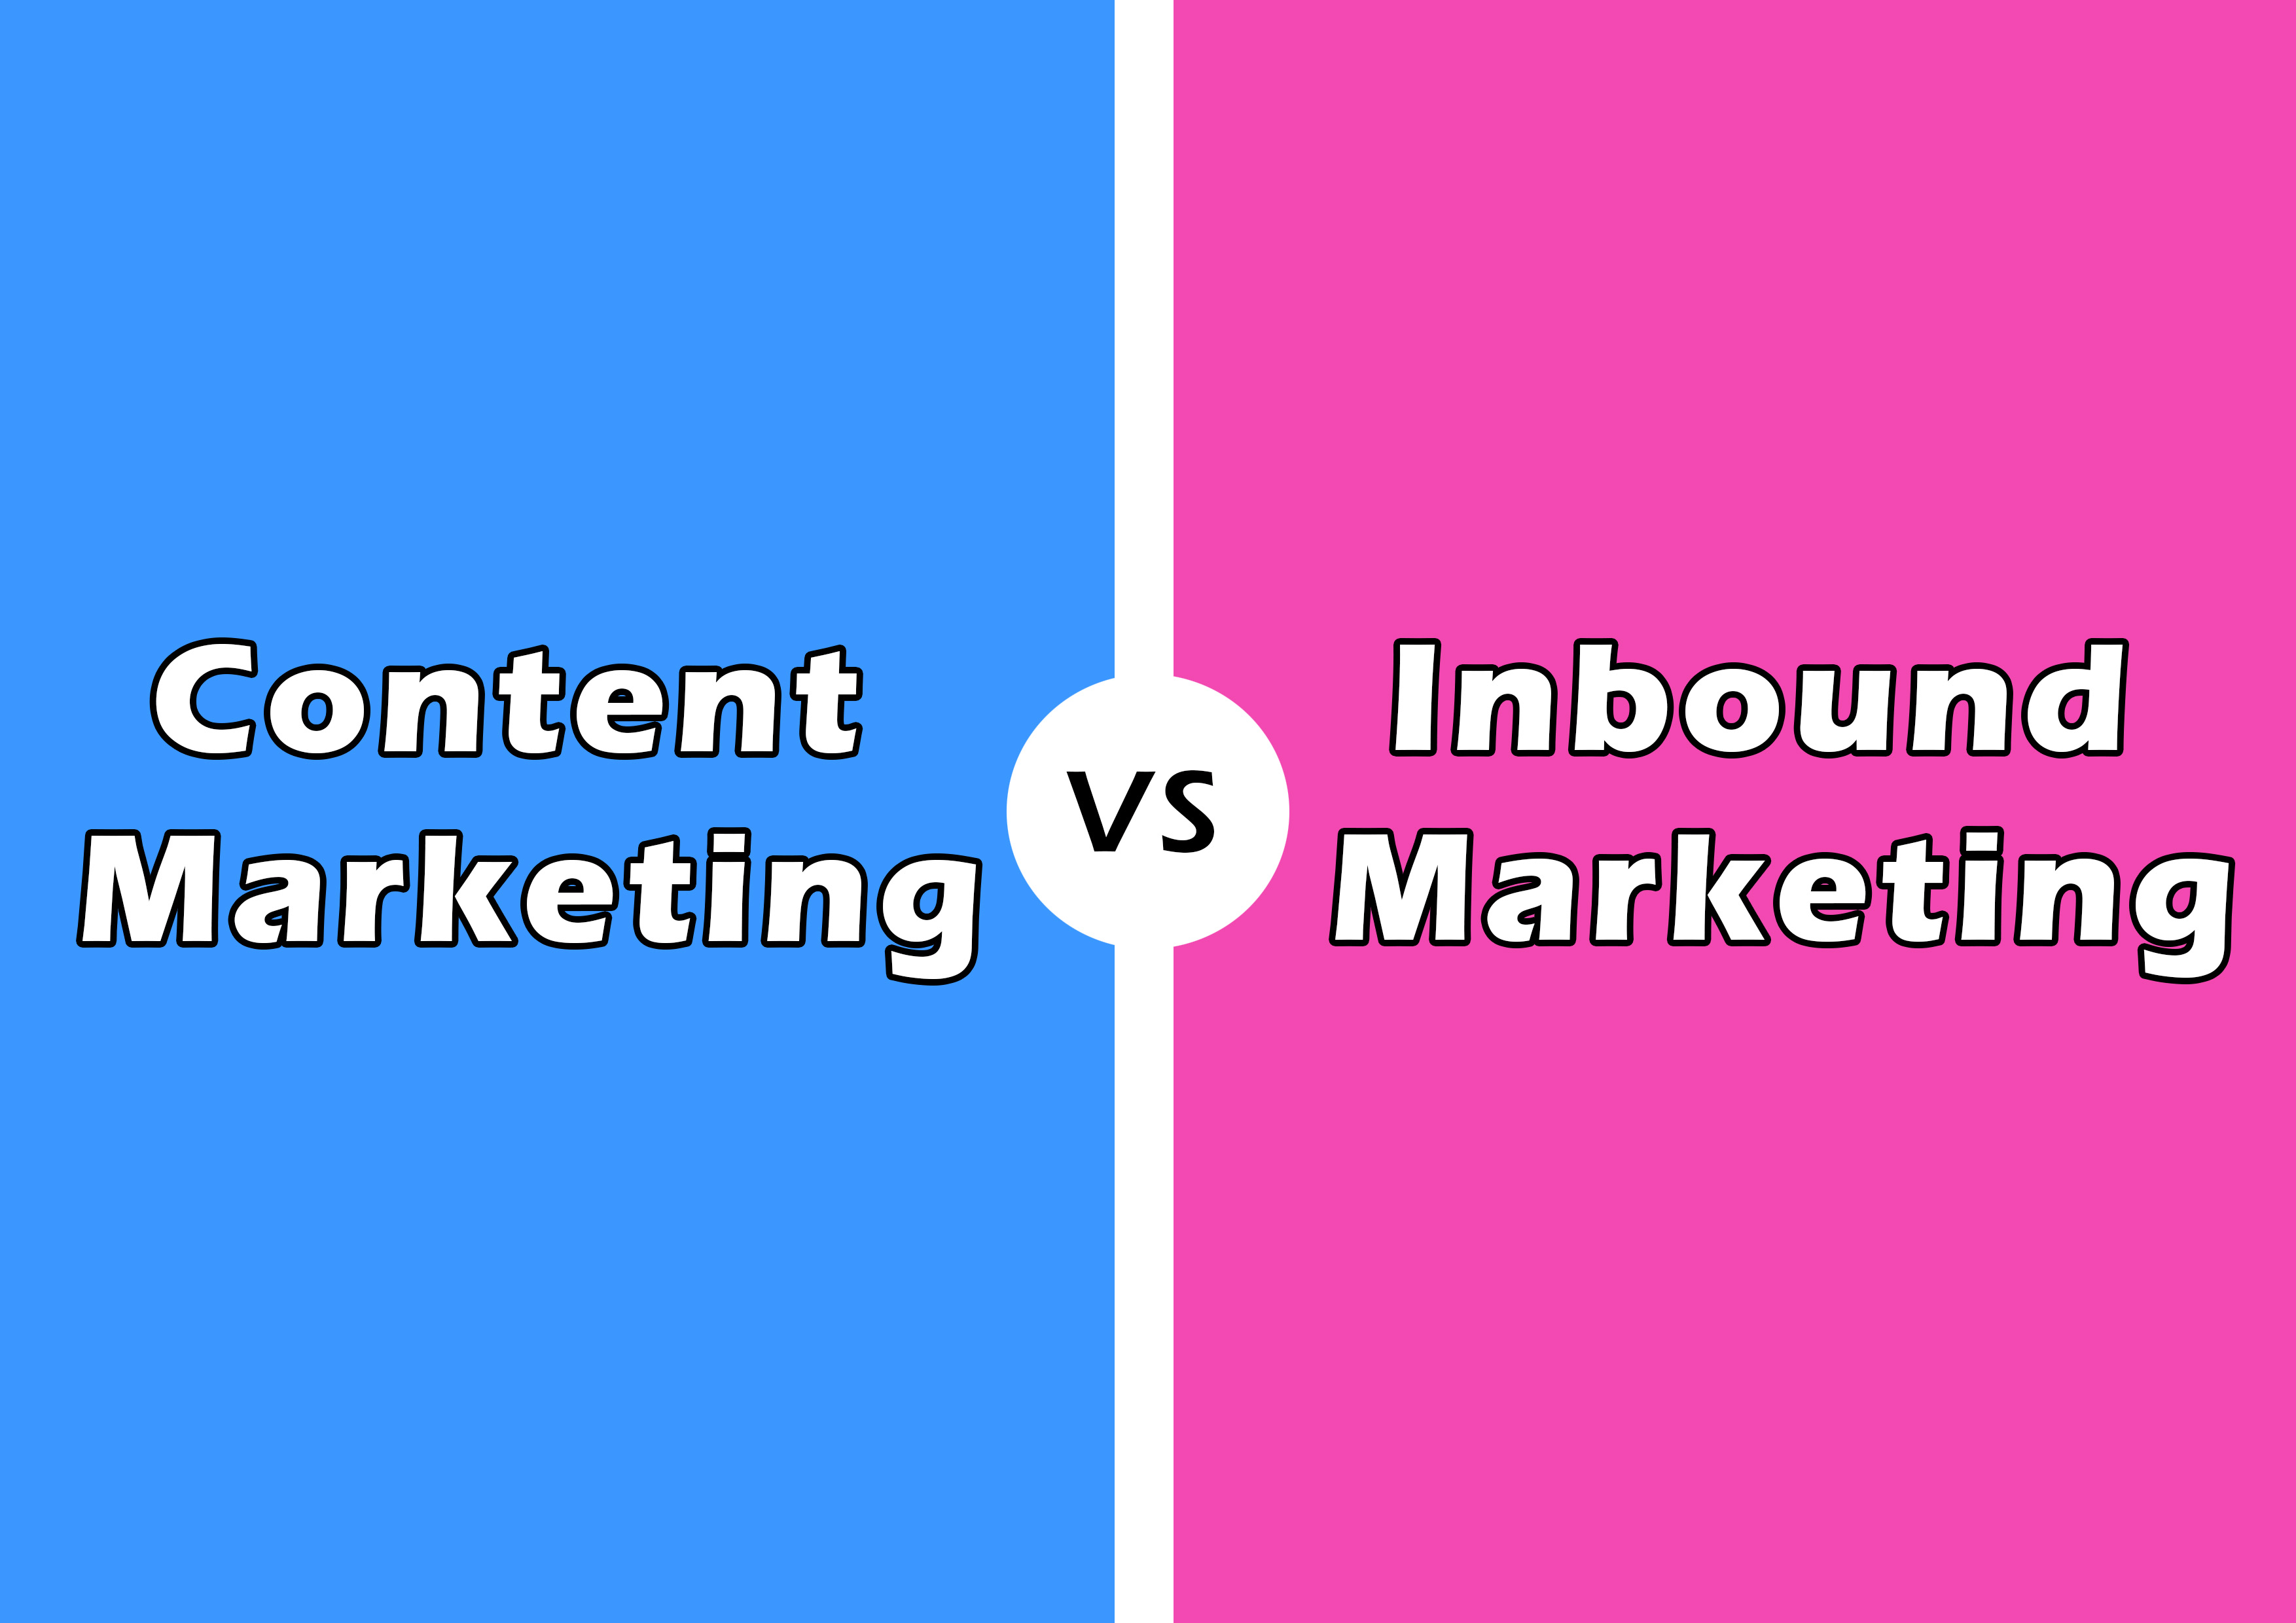 Content Marketing Vs. Inbound Marketing: What Is The Difference?